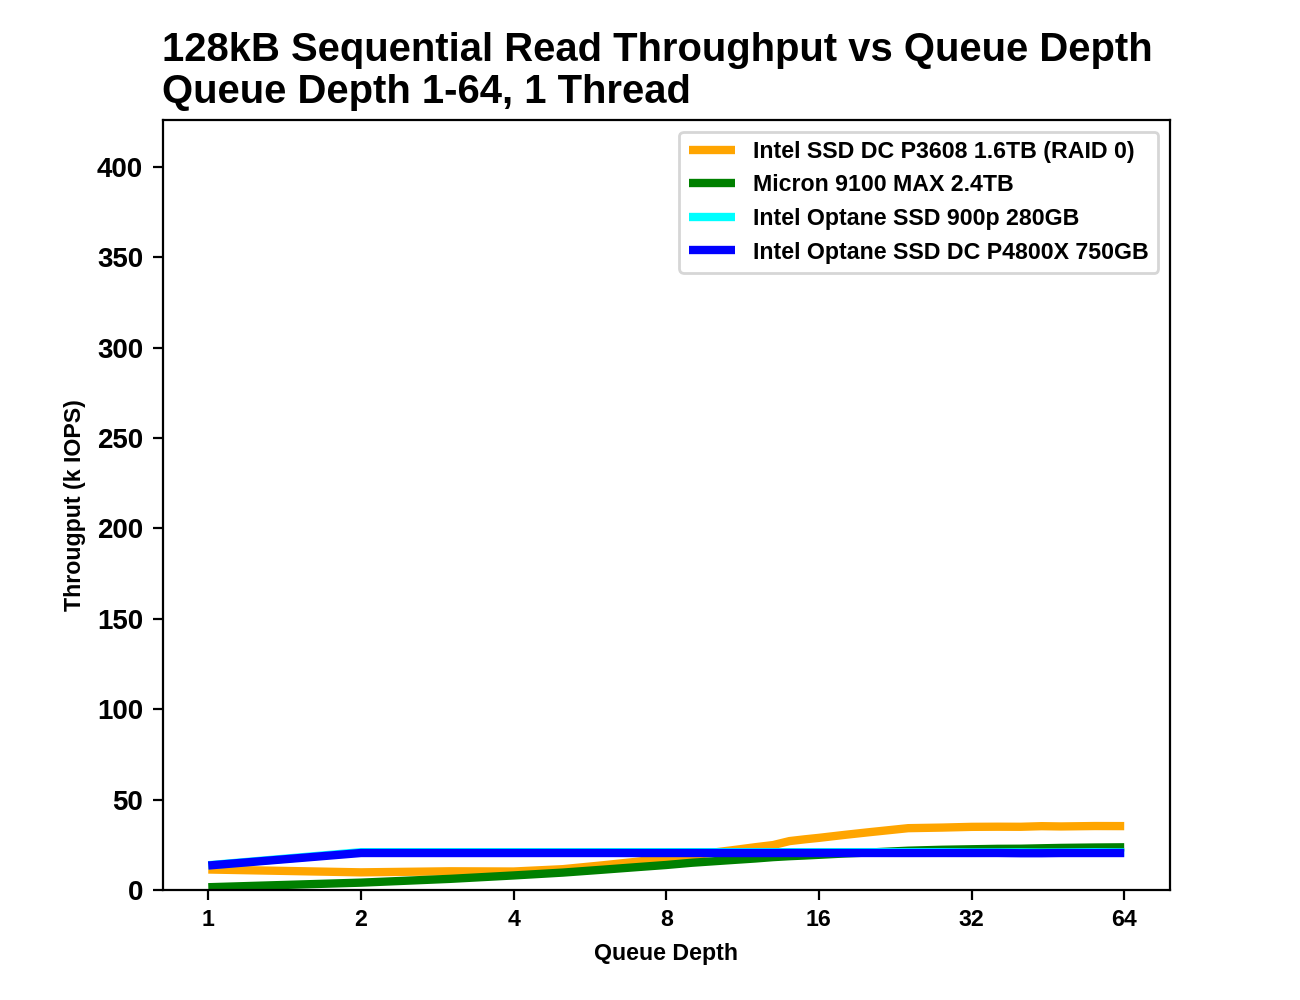 Sequential Read Throughput